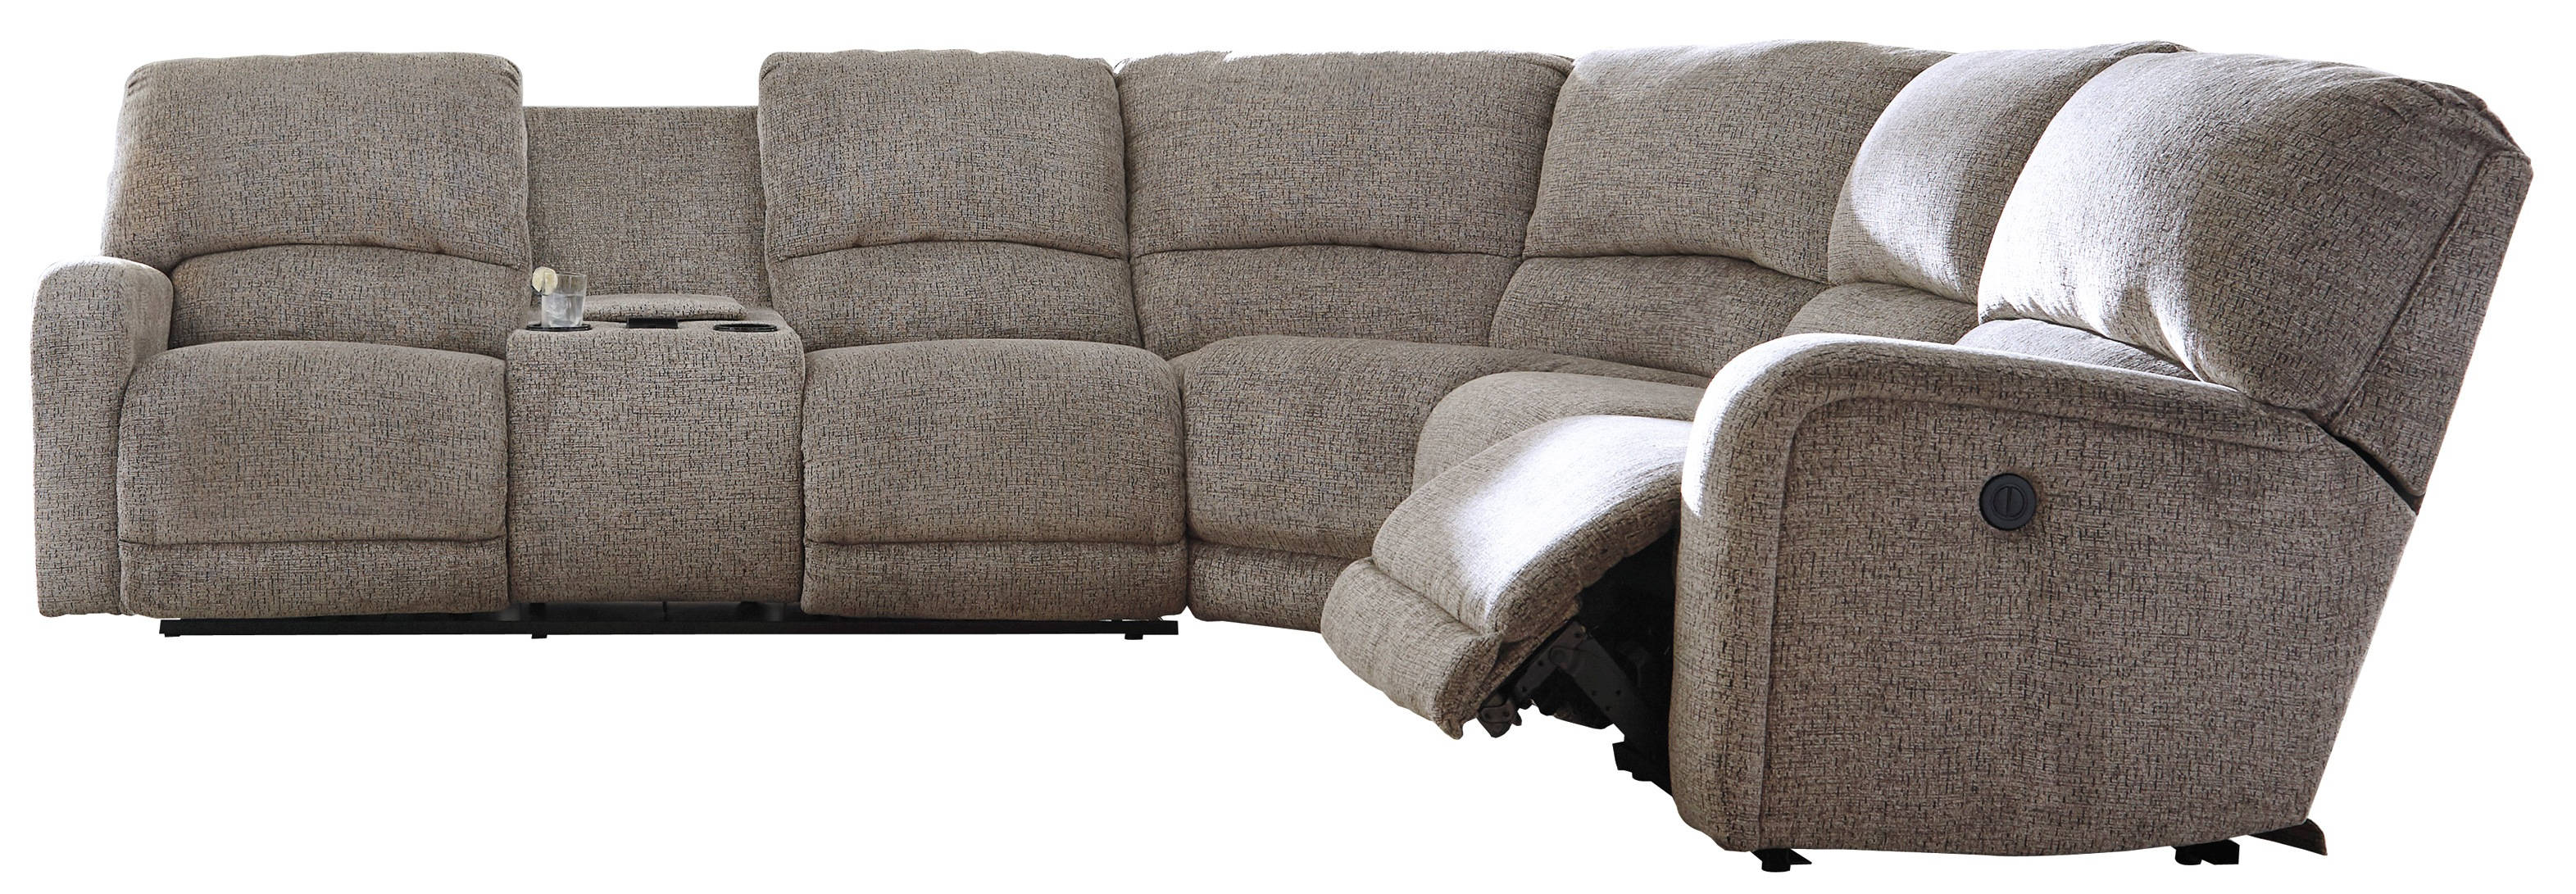 Ashley Furniture Pittsfield Fossil Raf Wall Power Recliner Sectional The Classy Home